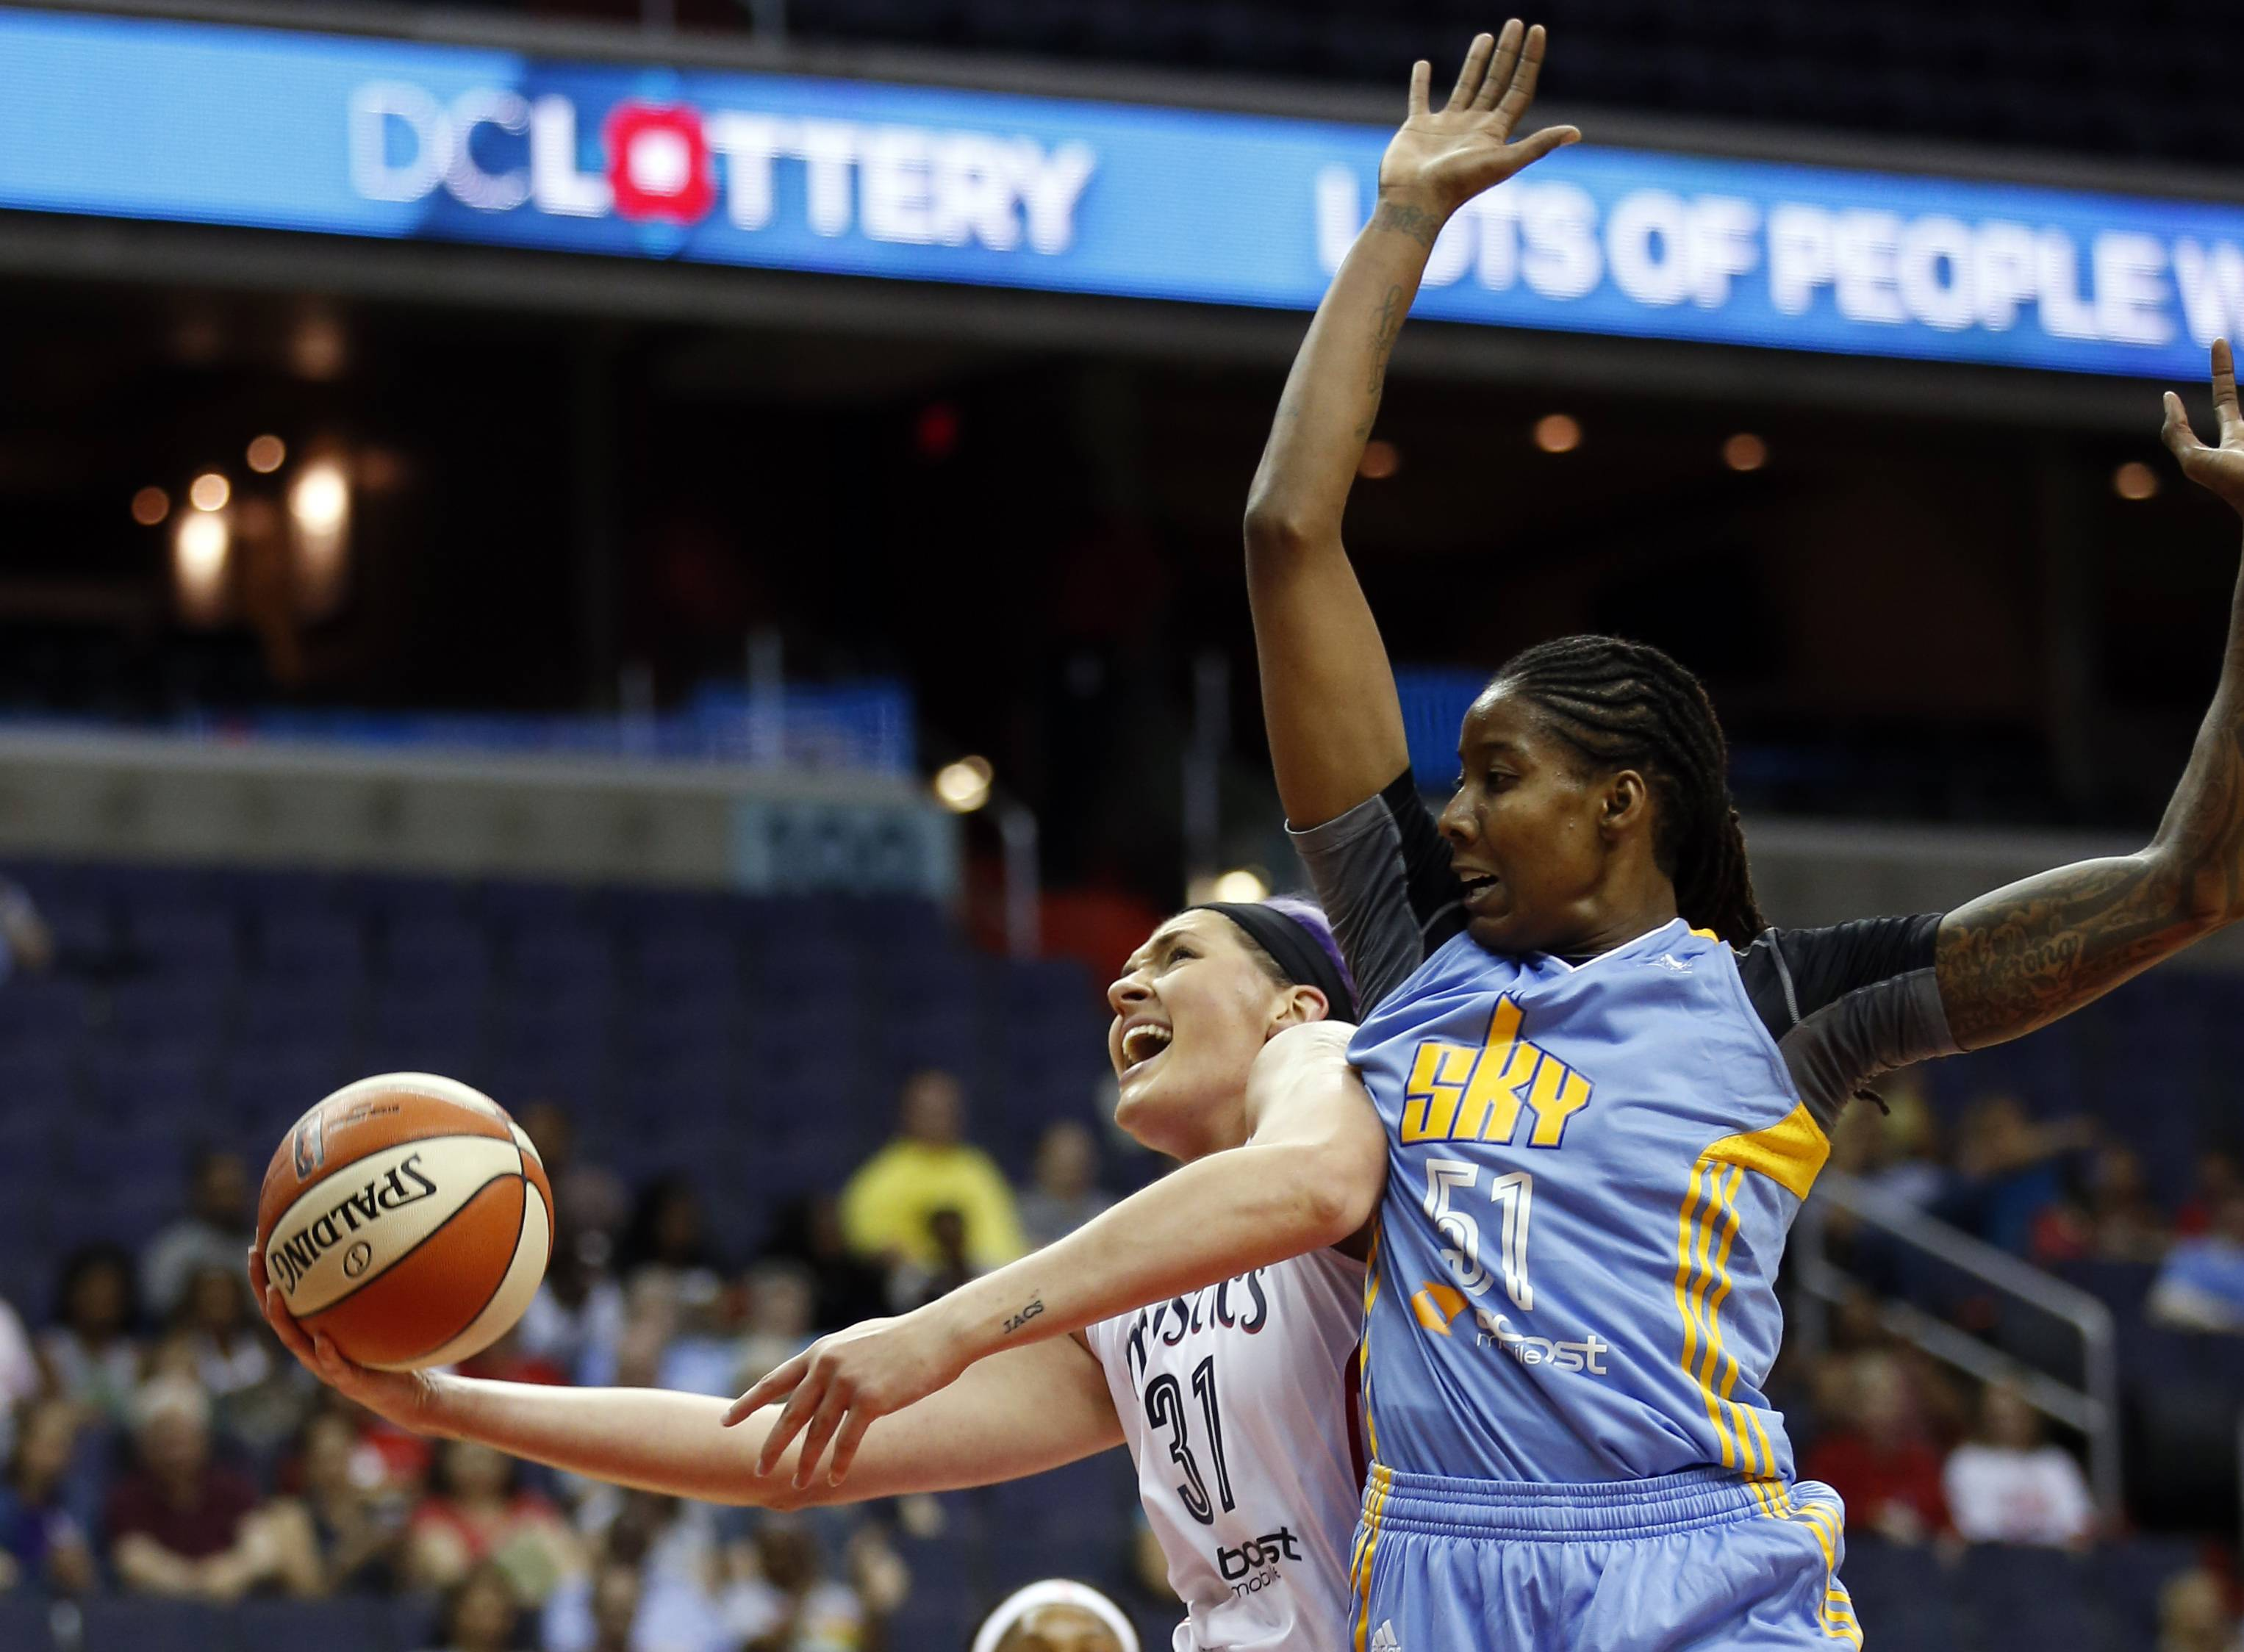 Fines or not, WNBA got it right with this controversy